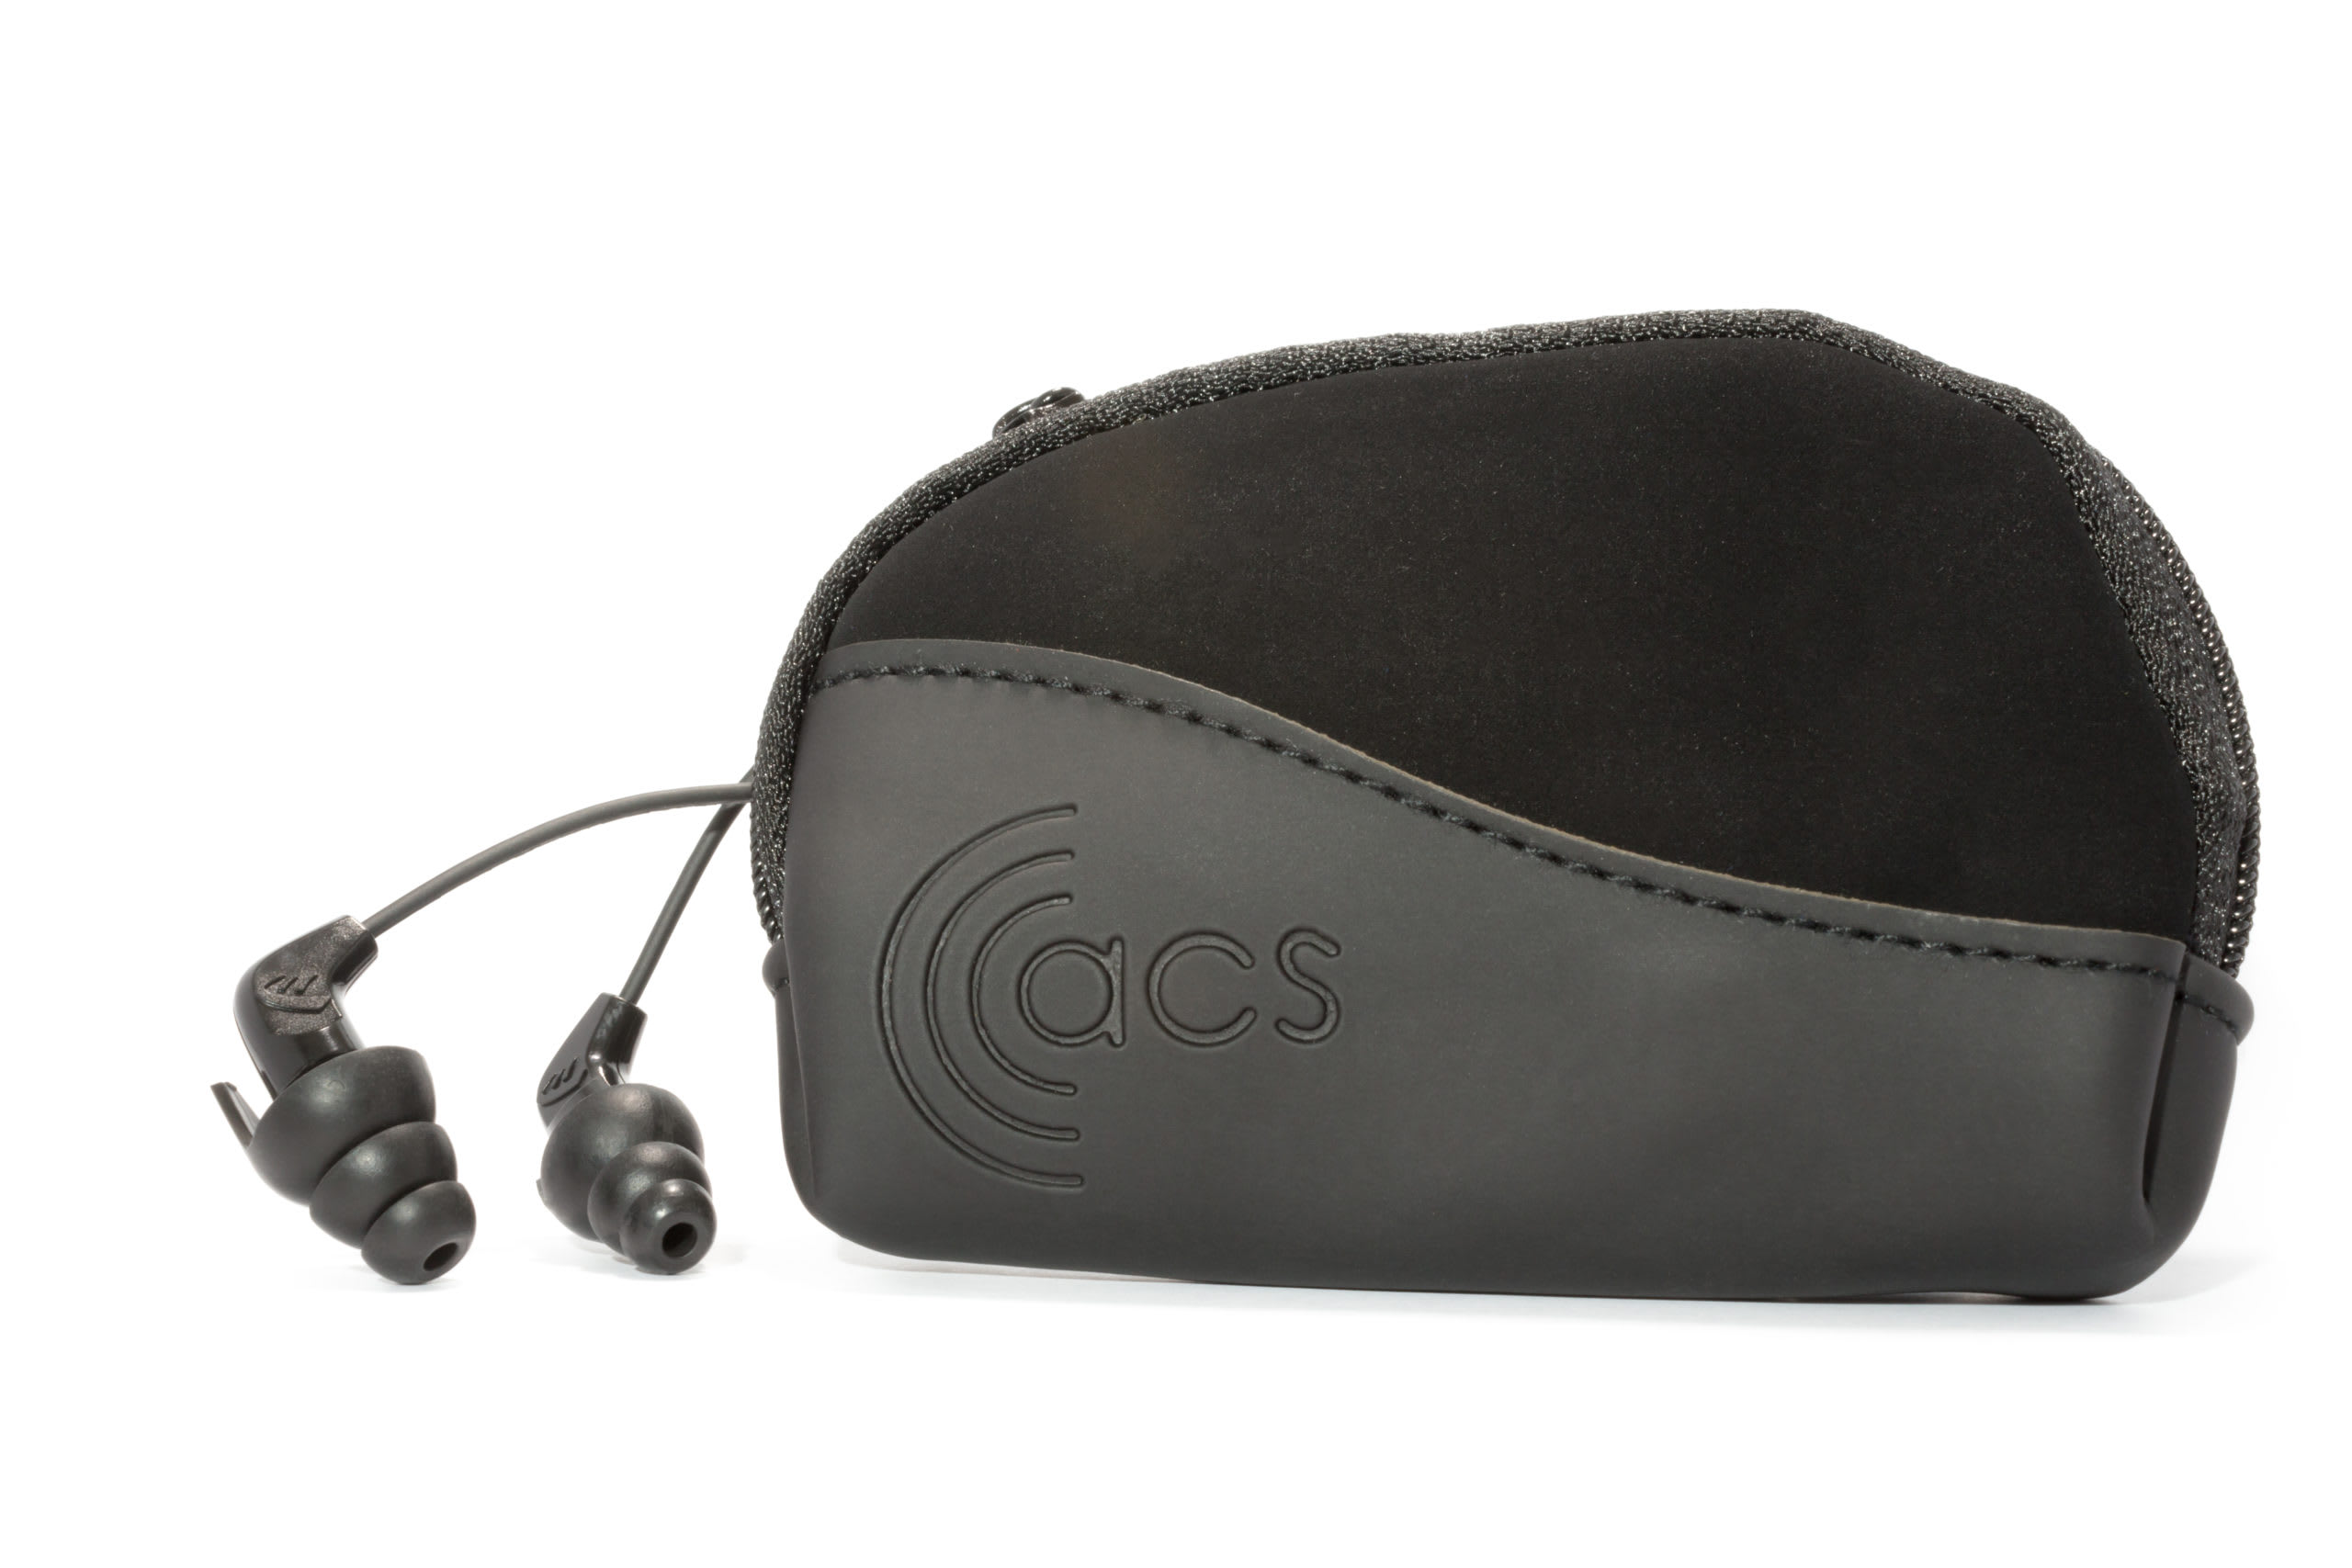 ACS Pro-fit earphones